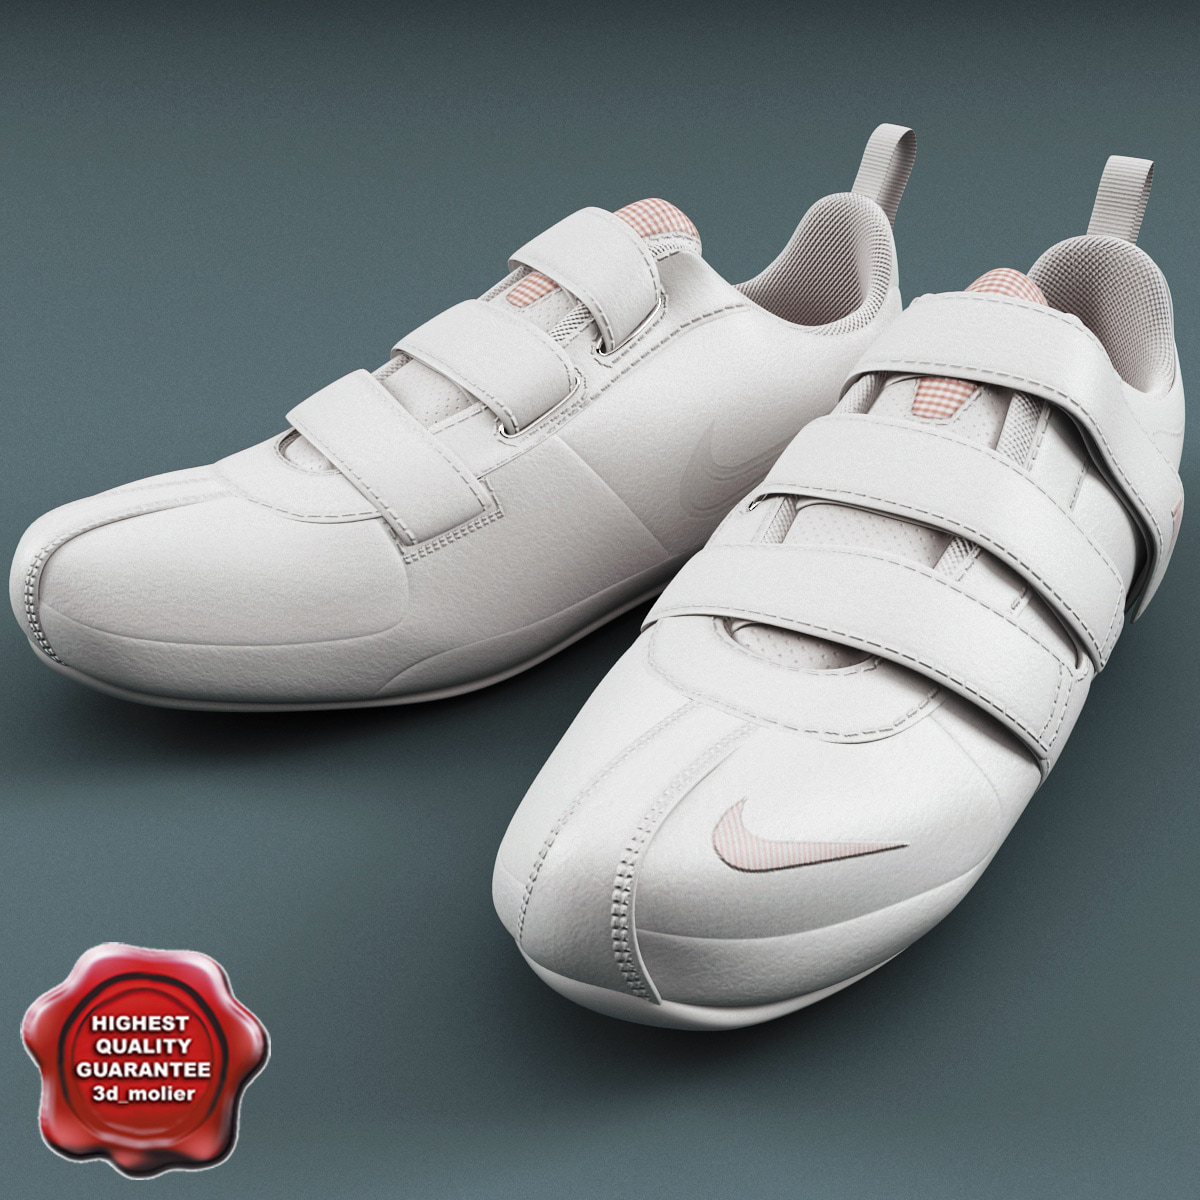 3ds max sneakers nike fixed speed